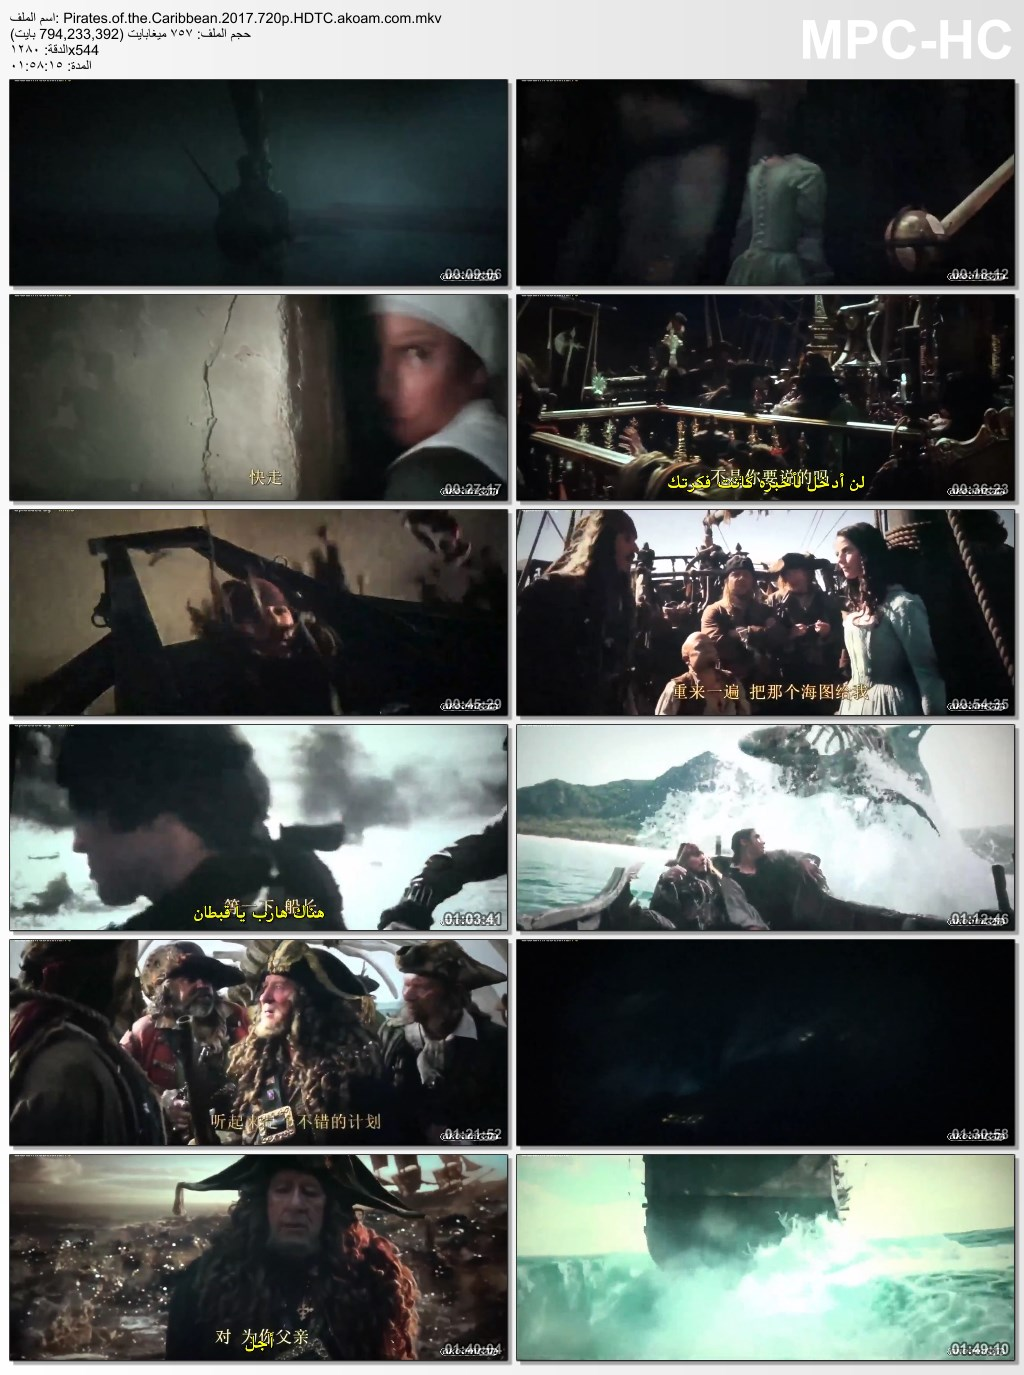 Pirates of the Caribbean Dead Men Tell No Tales,Pirates of the Caribbean: Dead Men Tell No Tales,Pirates of the Caribbean,قراصنة الكاريبة 5,الاكشن,المغامرات,الدراما,الفانتازيا